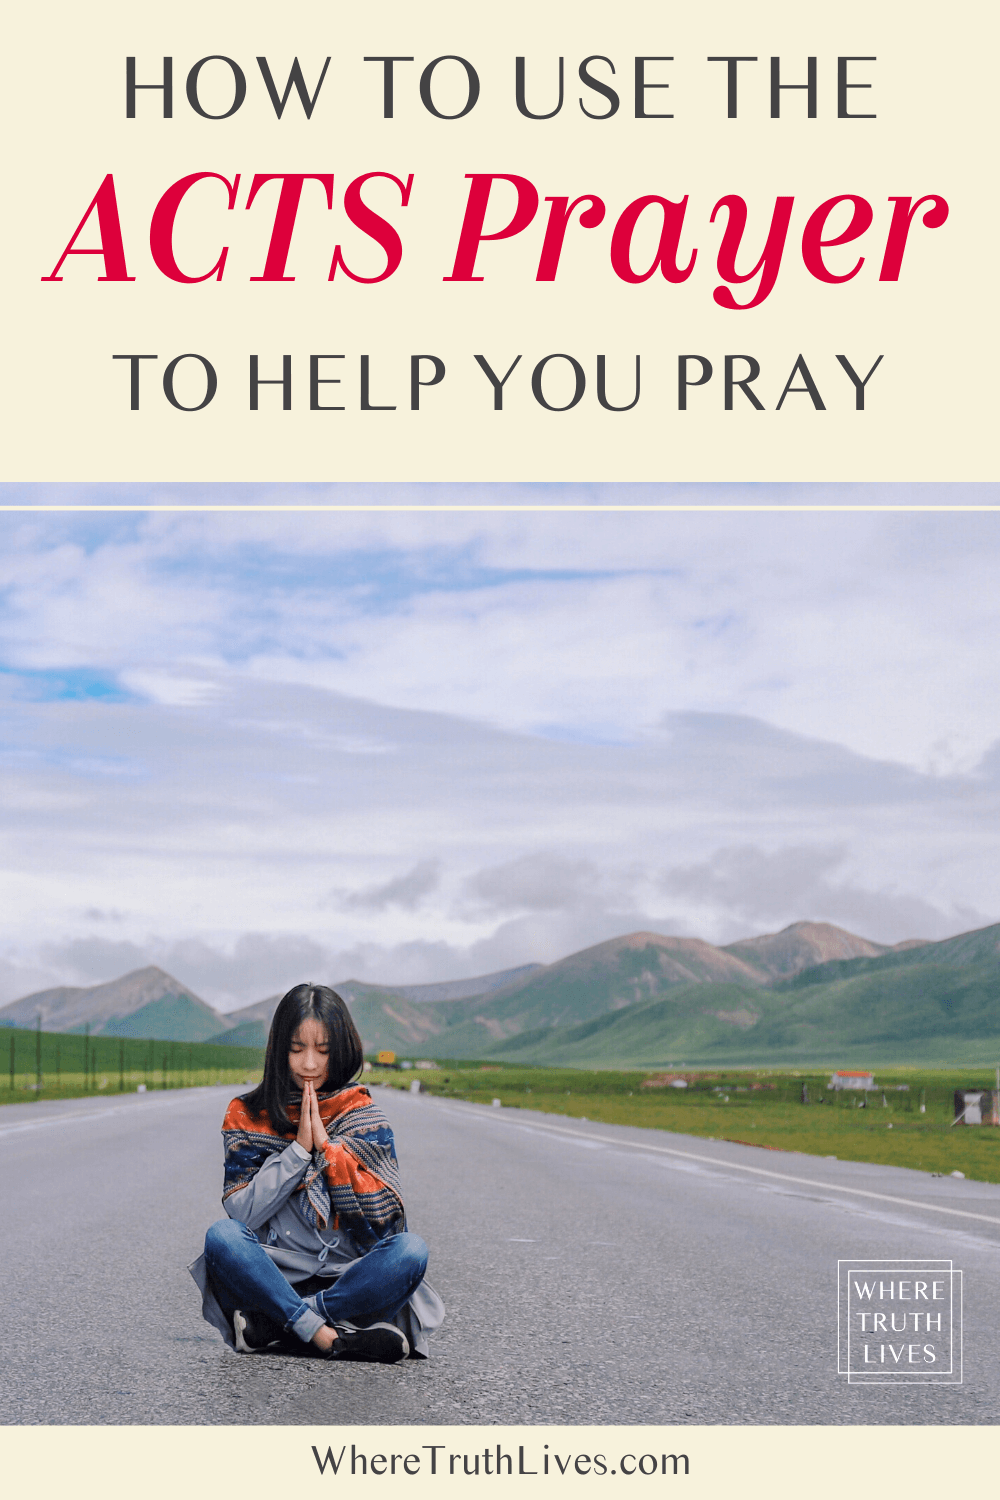 No idea where to start when you're trying to pray? This ACTS prayer walkthrough is a valuable starting point to help focus your thoughts... (with free printable worksheet) | Where Truth Lives .com | Christian blog post | praying, adoration, confession, thanksgiving, supplication, pray